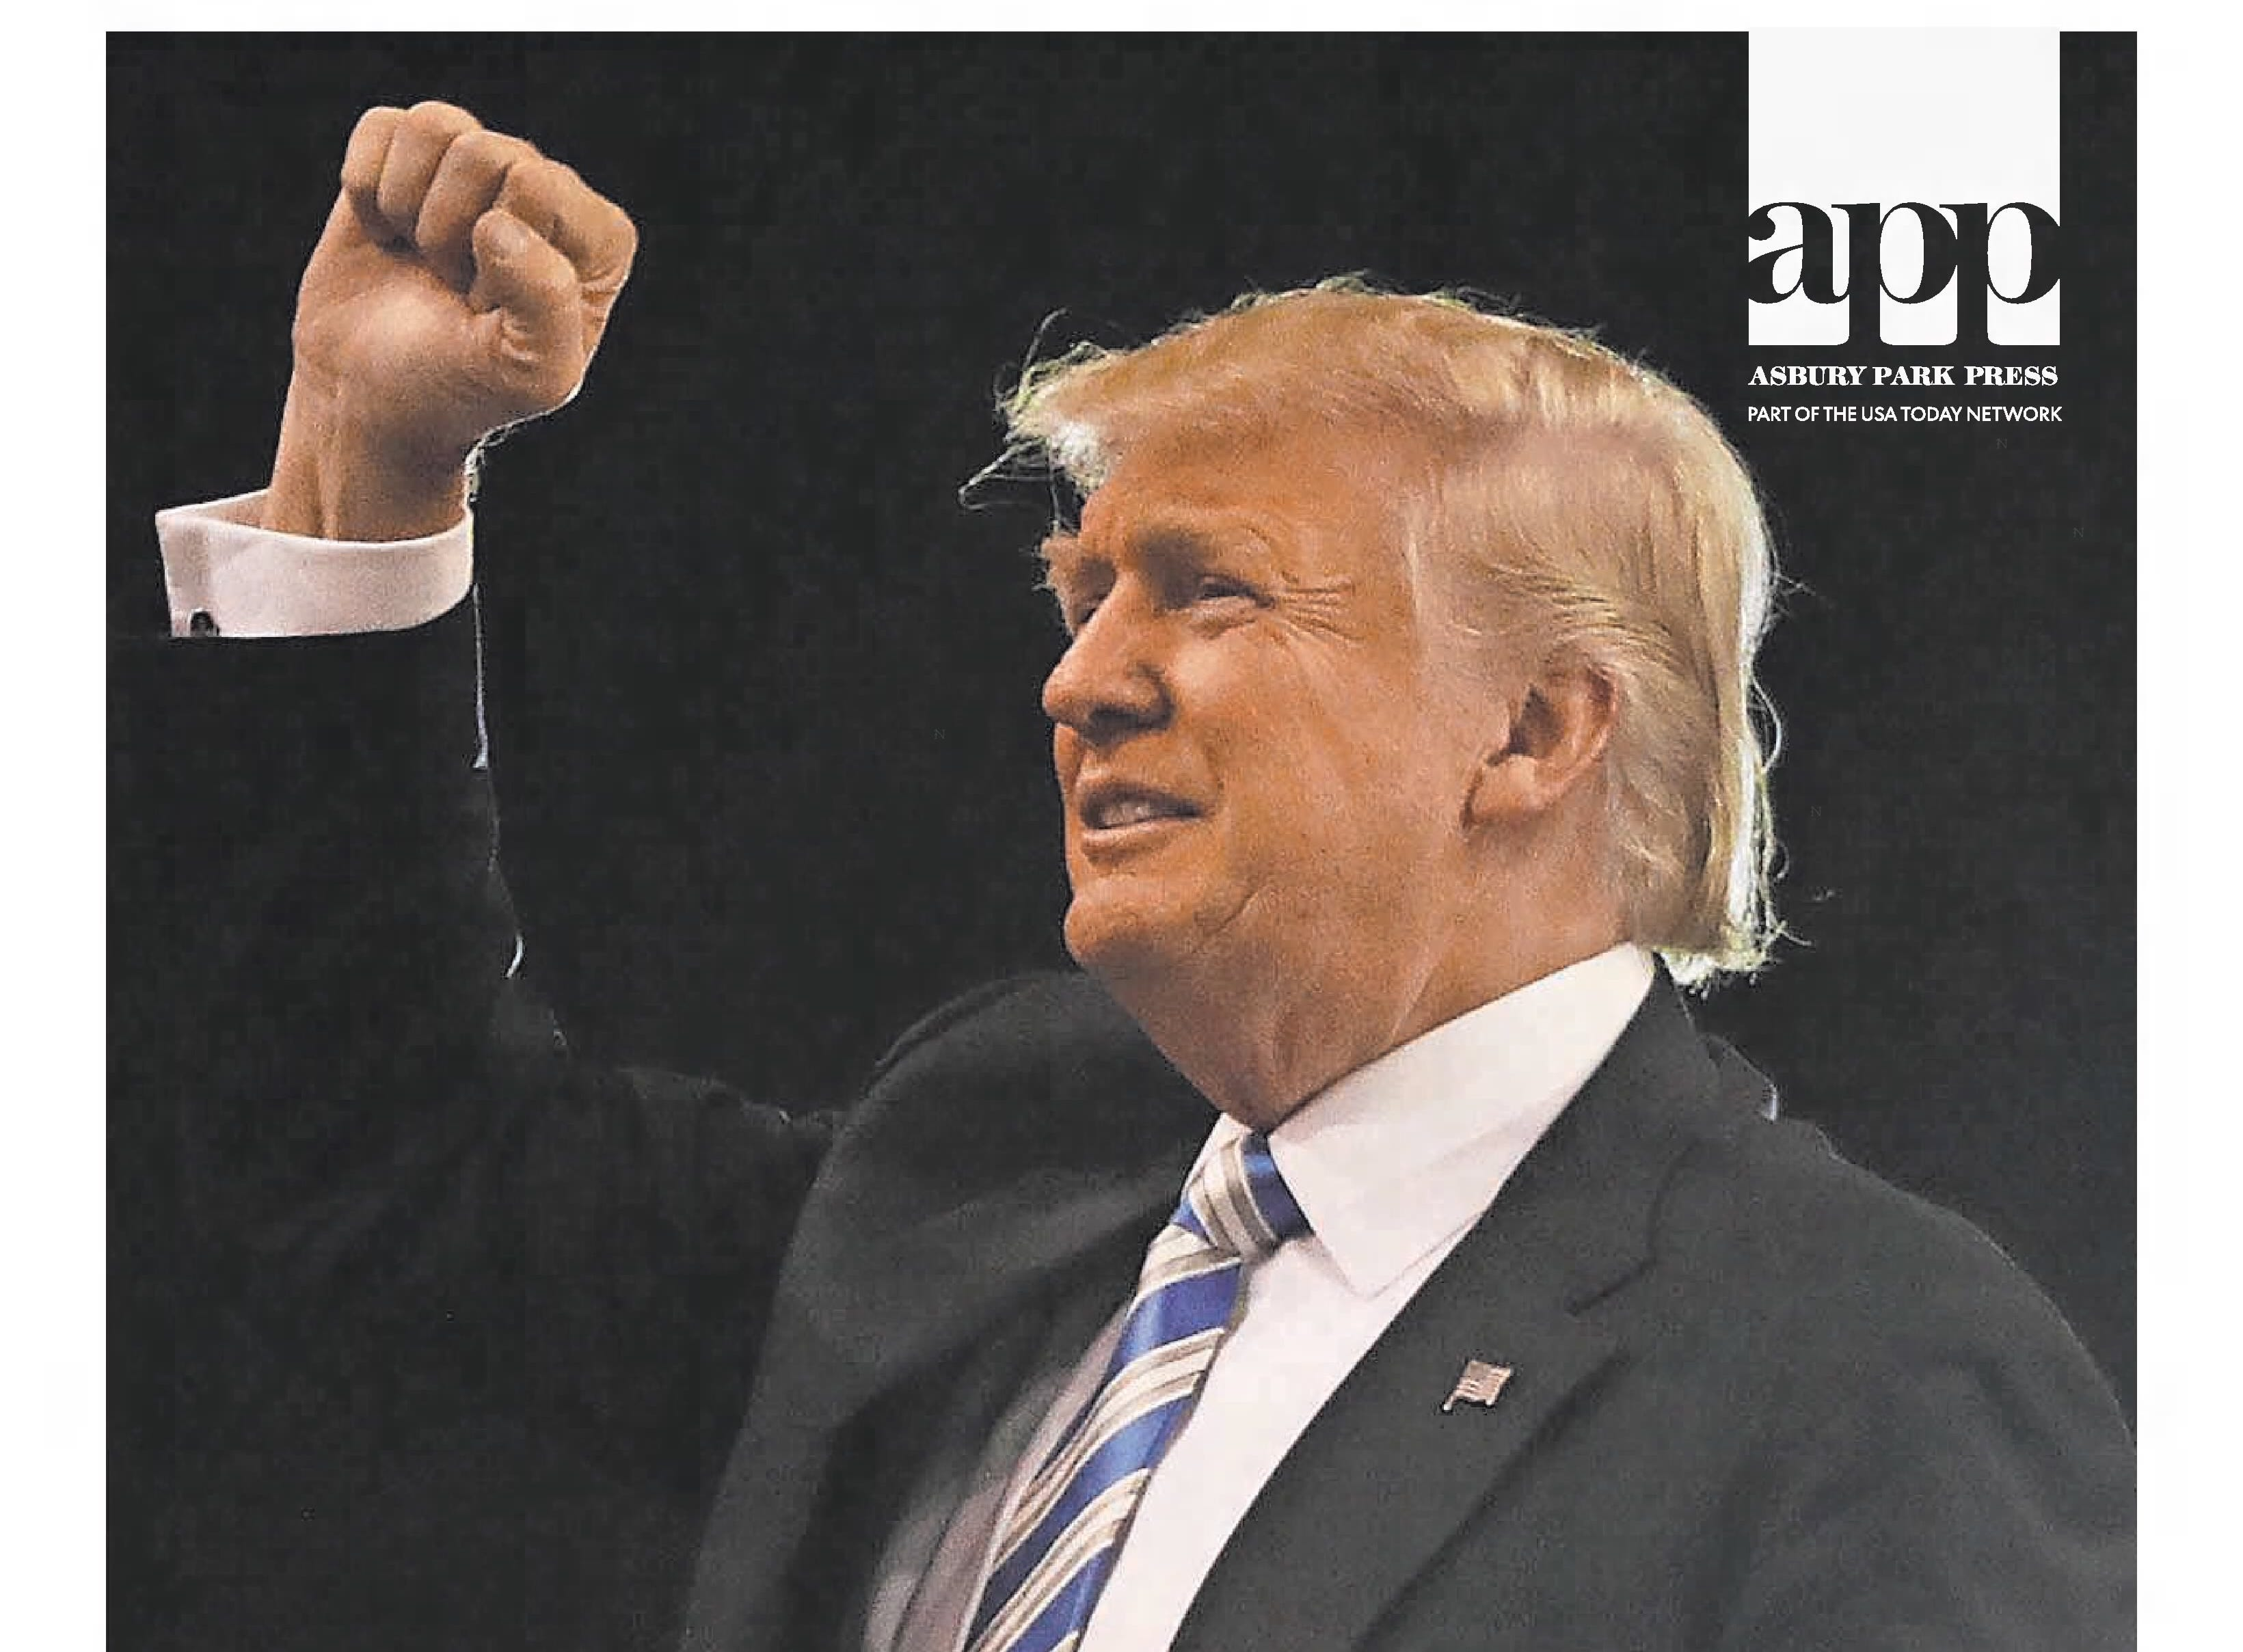 In the biggest upset since the 1948 election, Donald Trump defies all expectations and is elected the 45th president of the United States in this edition from Wednesday, Nov. 9, 2016.